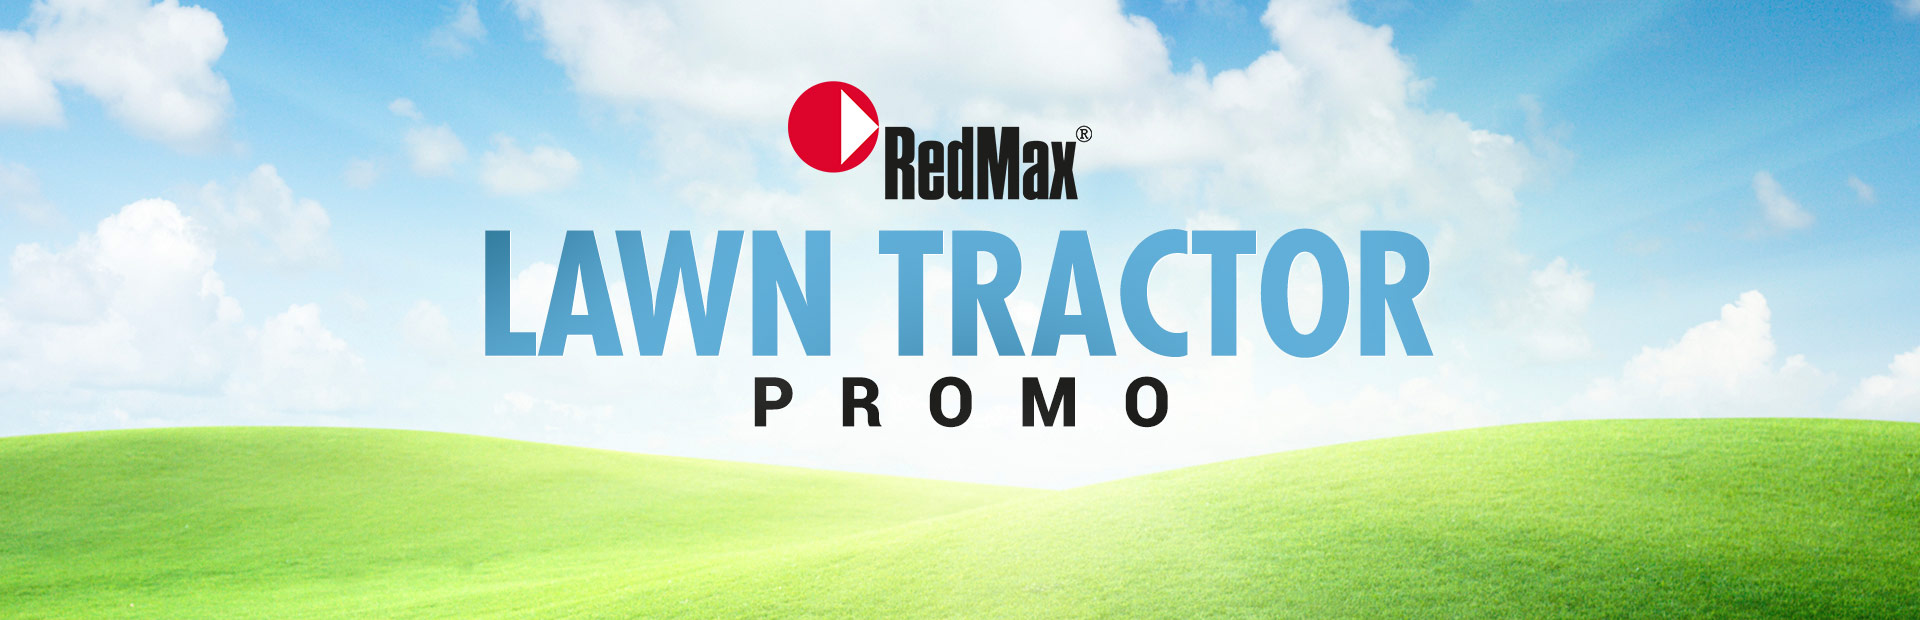 RedMax: Lawn Tractor Promo